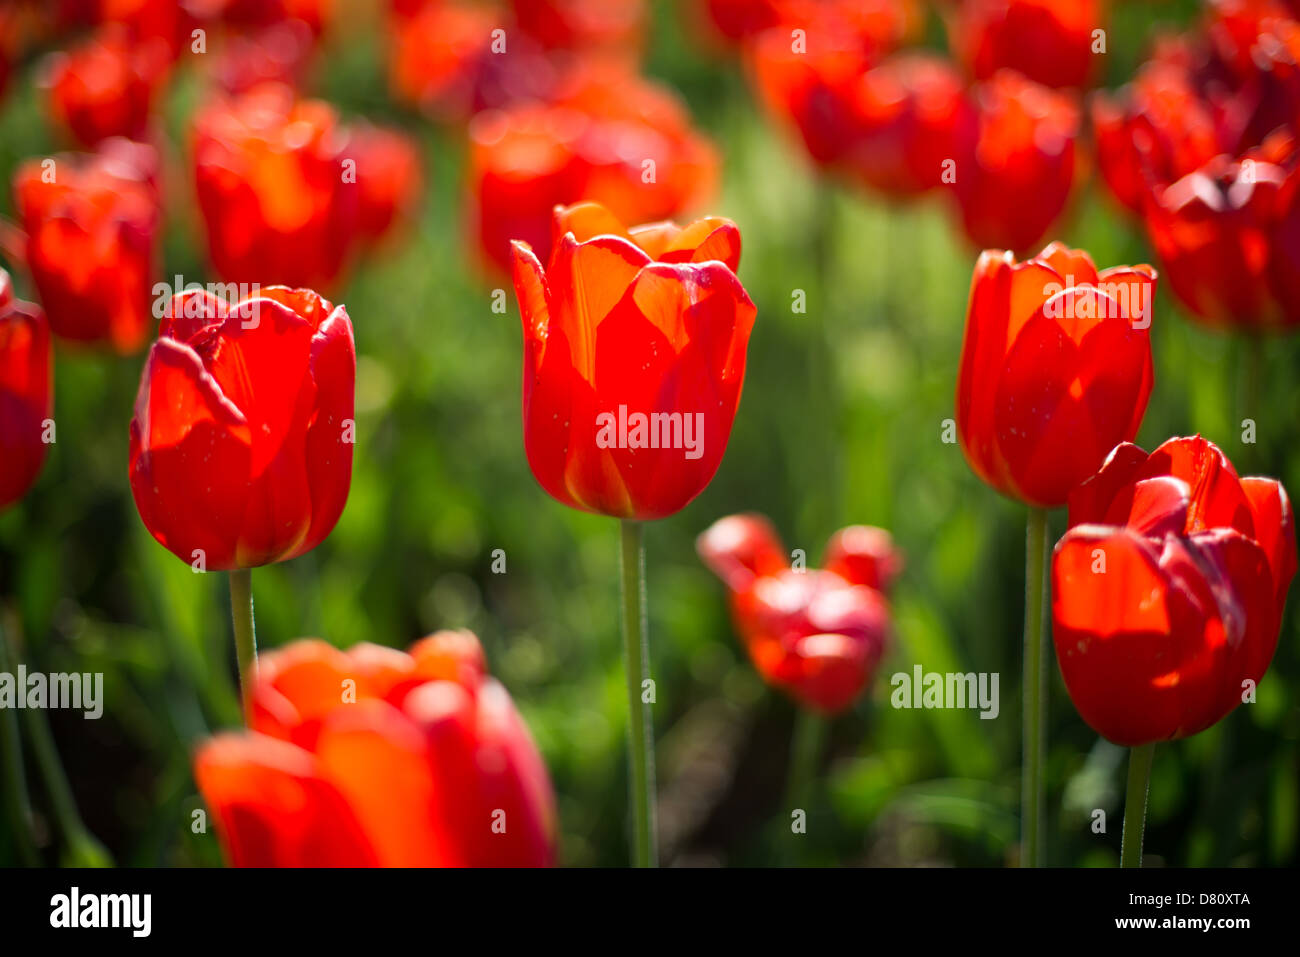 Beautiful red tulips in bloom at the Netherlands Carillon next to Arlington National Cemetery and the Iwo Jima Memorial. First donated in 1954, the Carillon was moved to its current location in 1960. It was a gift of the Netherlands to the United States in thanks for US aid during World War II. Stock Photo